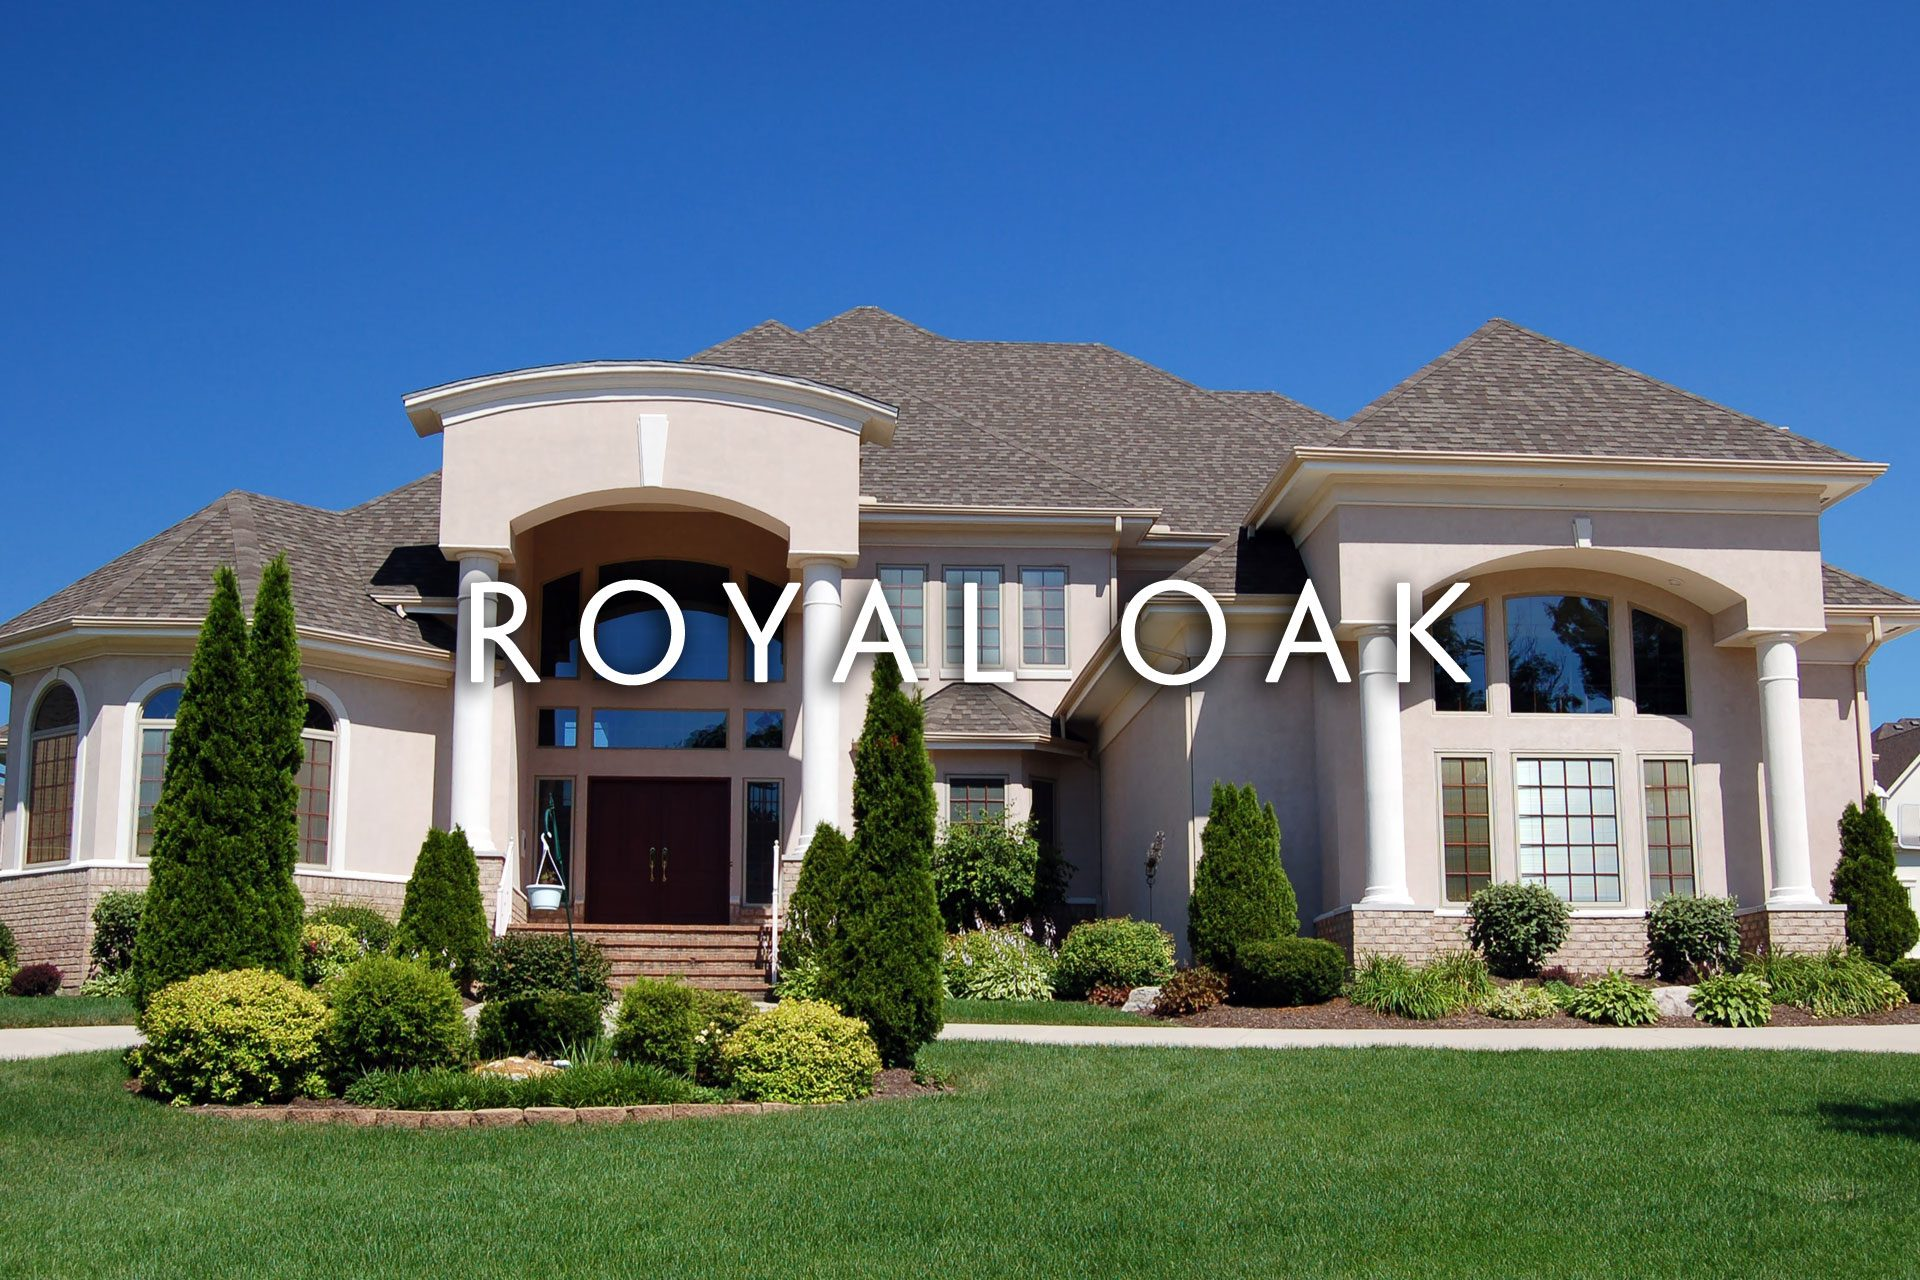 Royal Oak Real Estate to Buy from Realtor D. Alex Vaughn is owner of the Vaughn Luxury Real Estate Group focusing on Real Estate in the MIami and Detroit Markets.